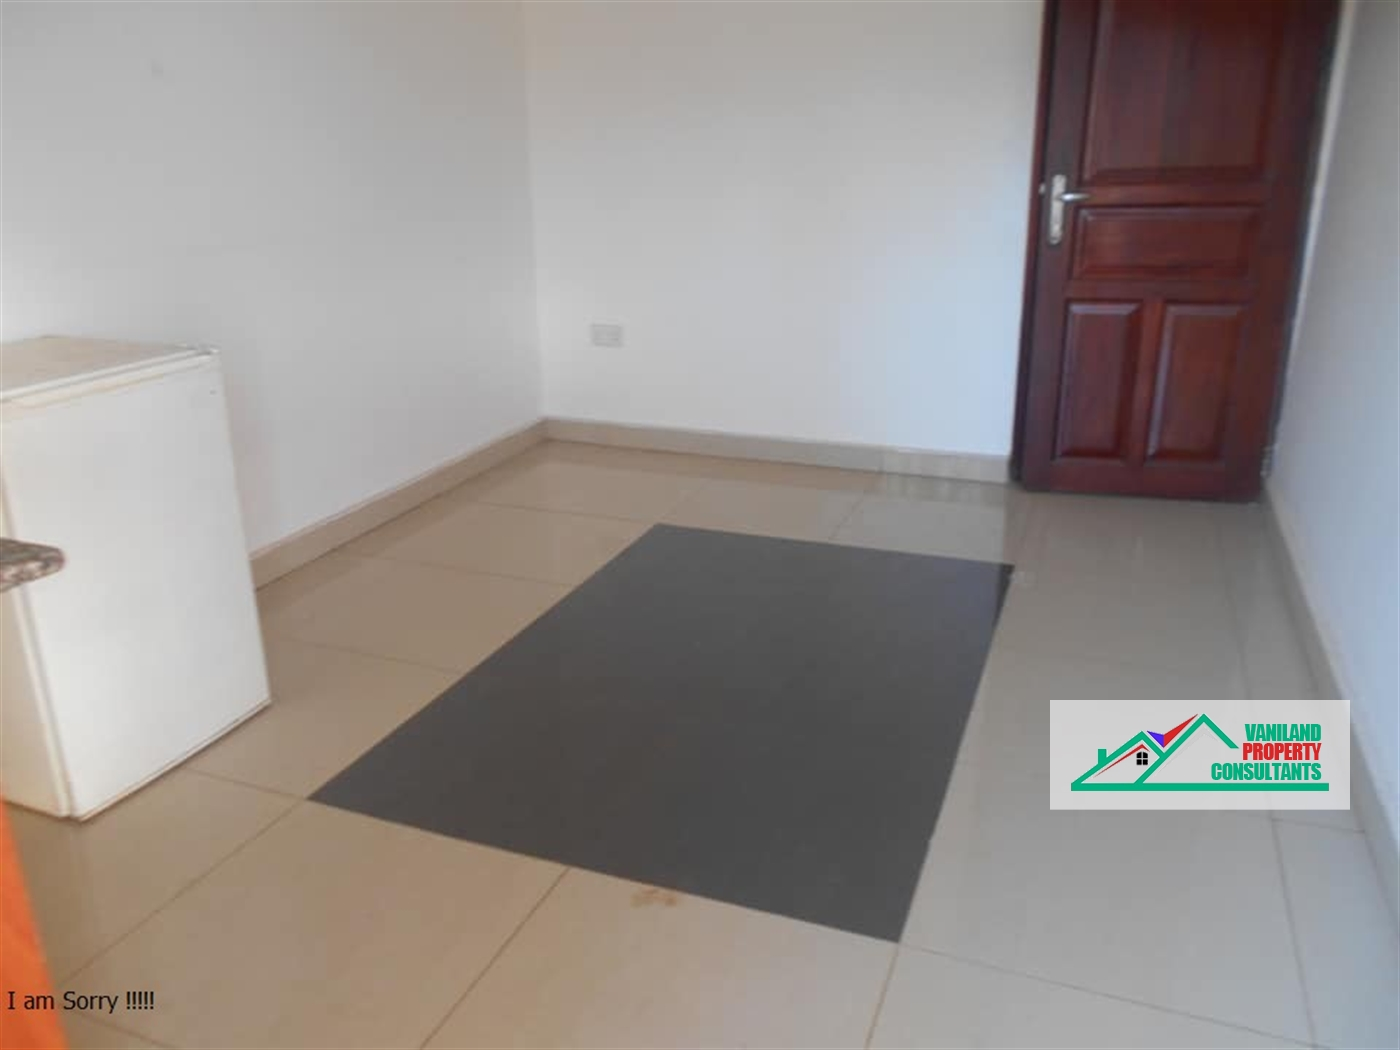 Apartment for rent in kireka Wakiso